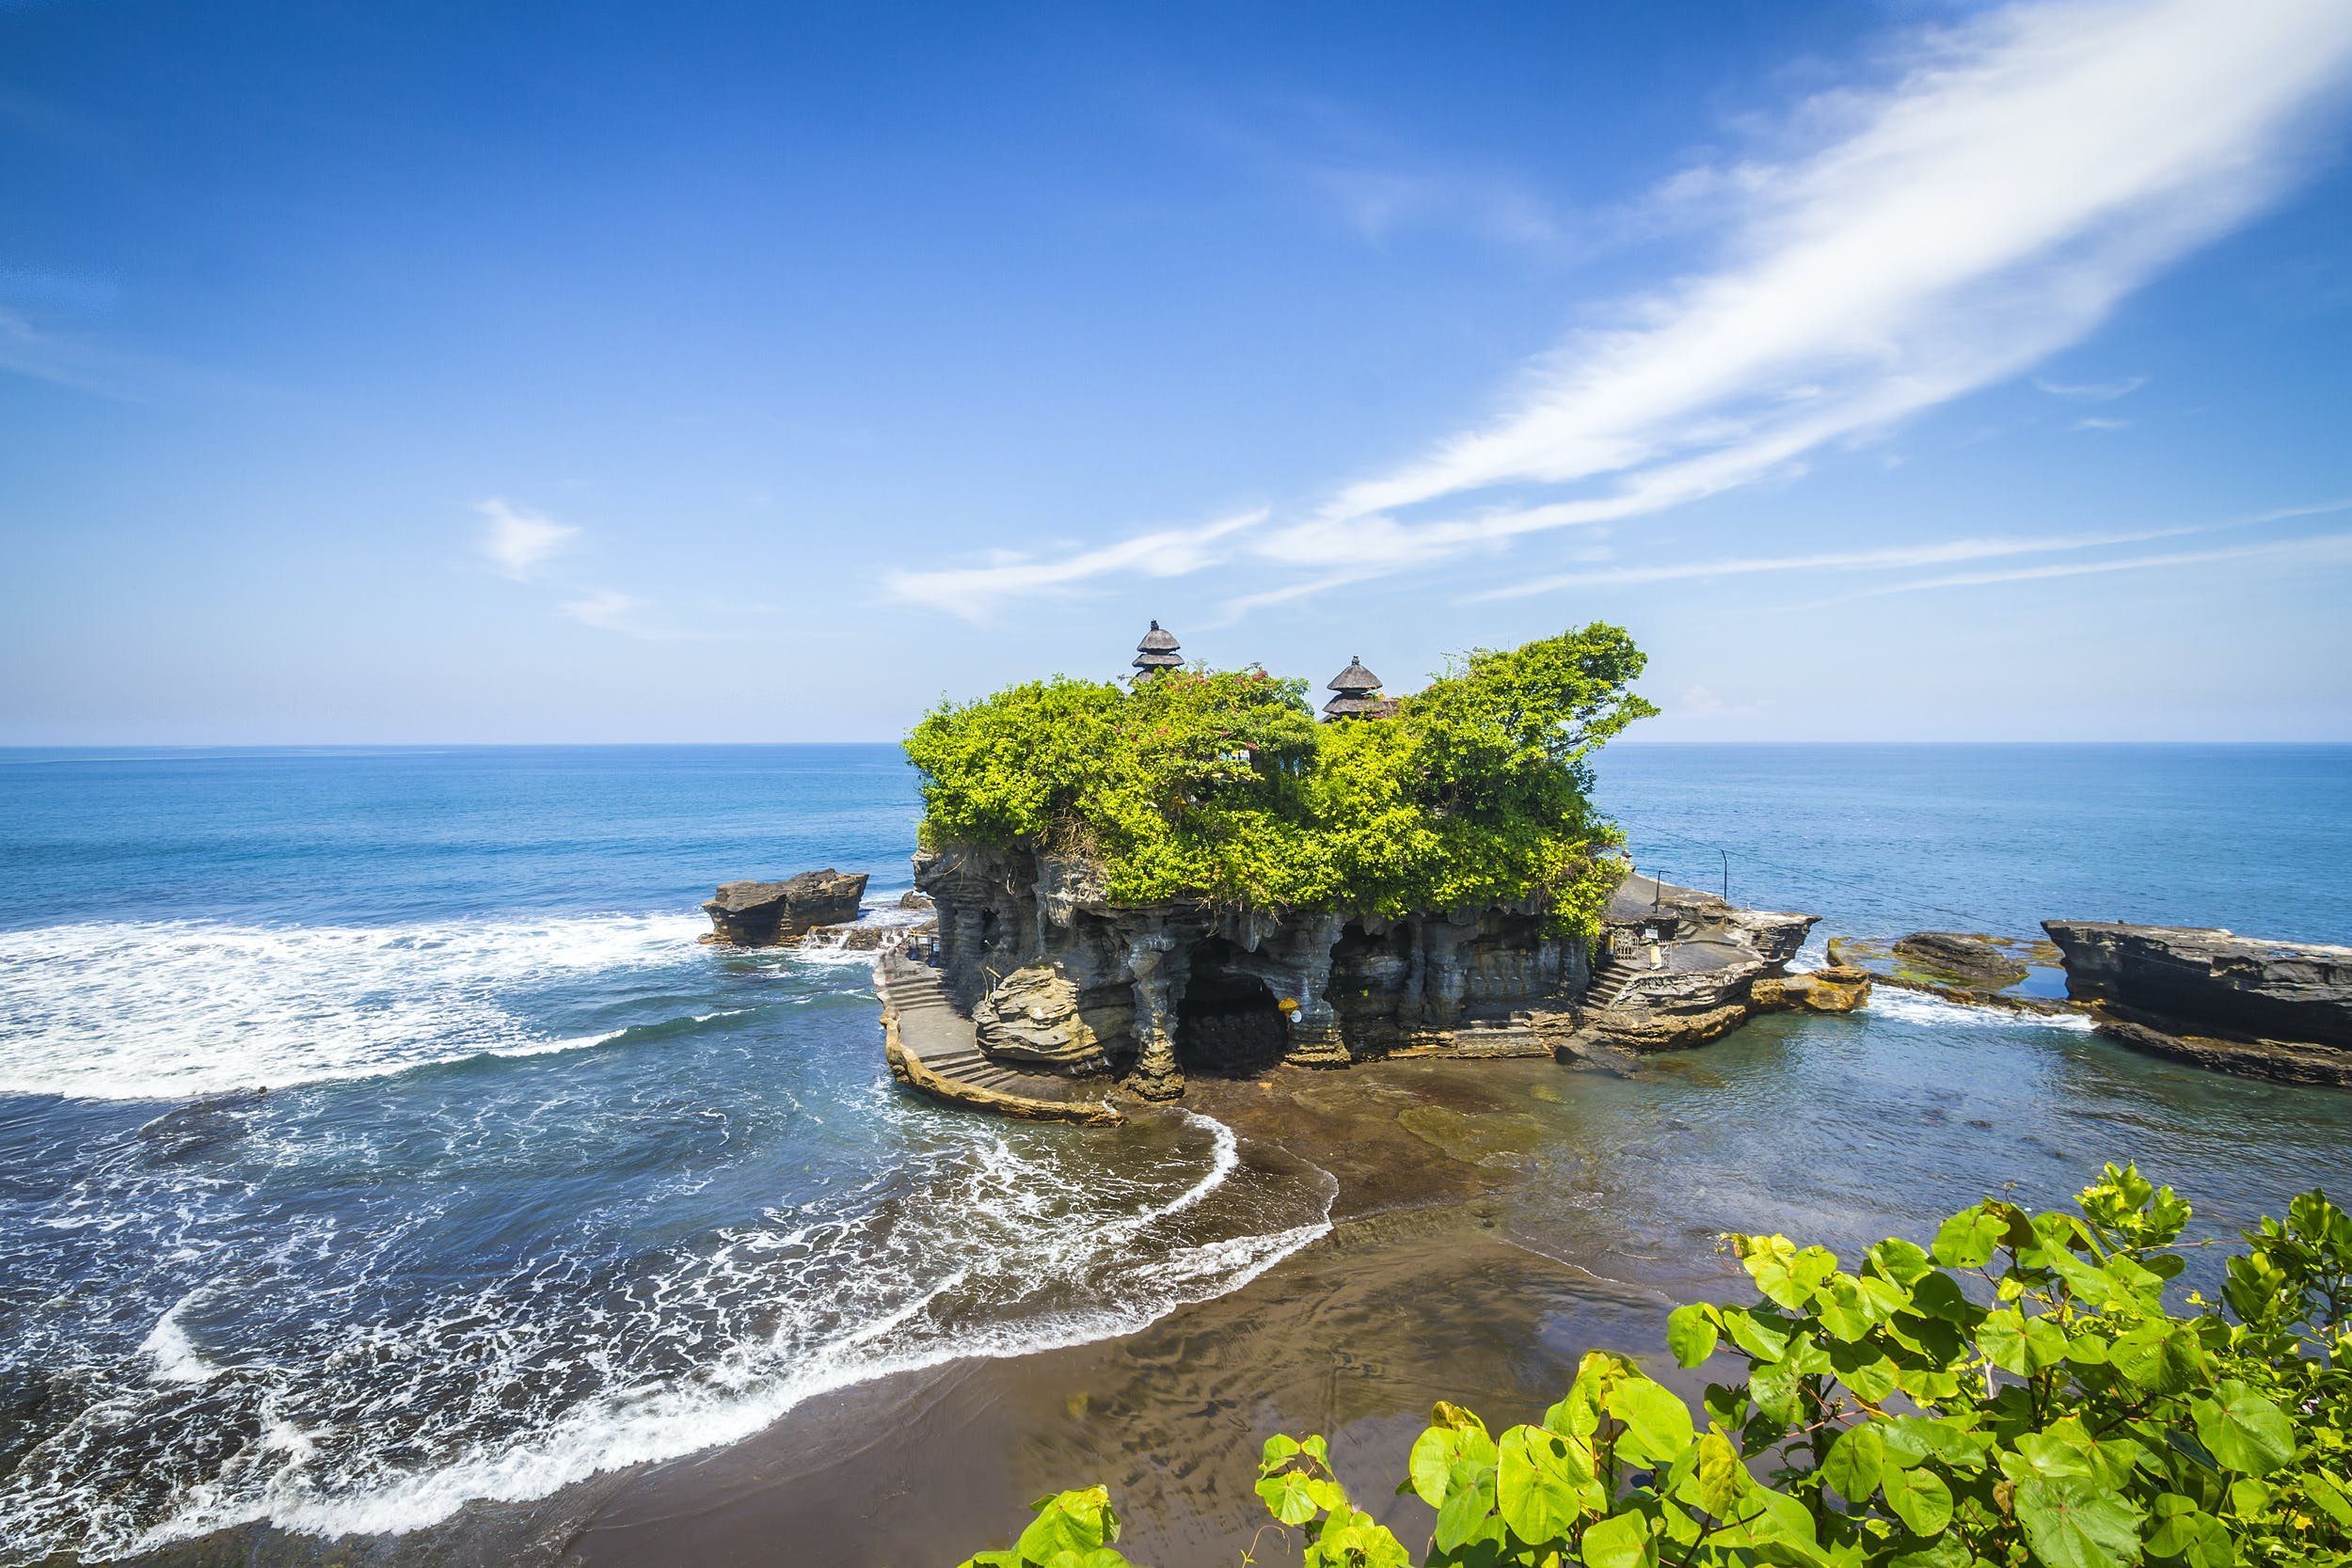 De wondermooie tempel Tanah Lot